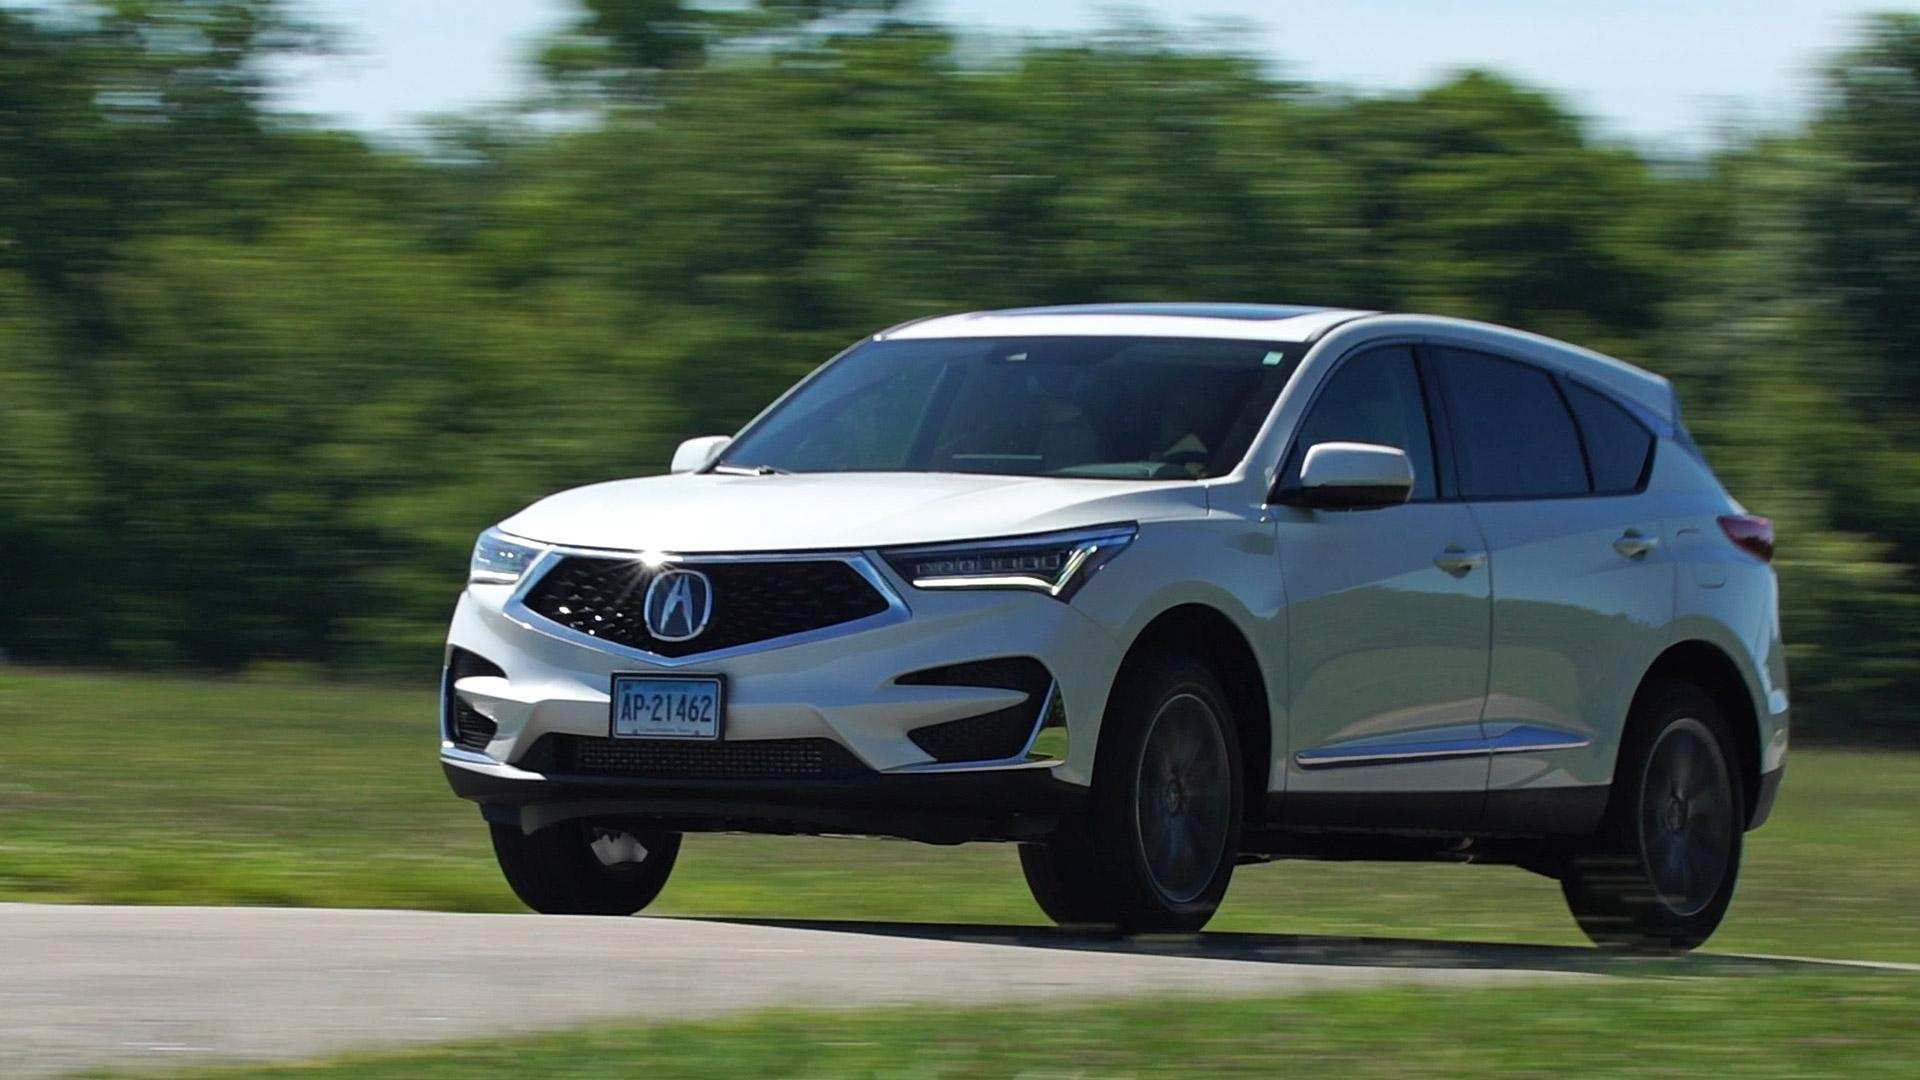 19 Best Review Best 2019 Acura Packages First Drive Rumors with Best 2019 Acura Packages First Drive